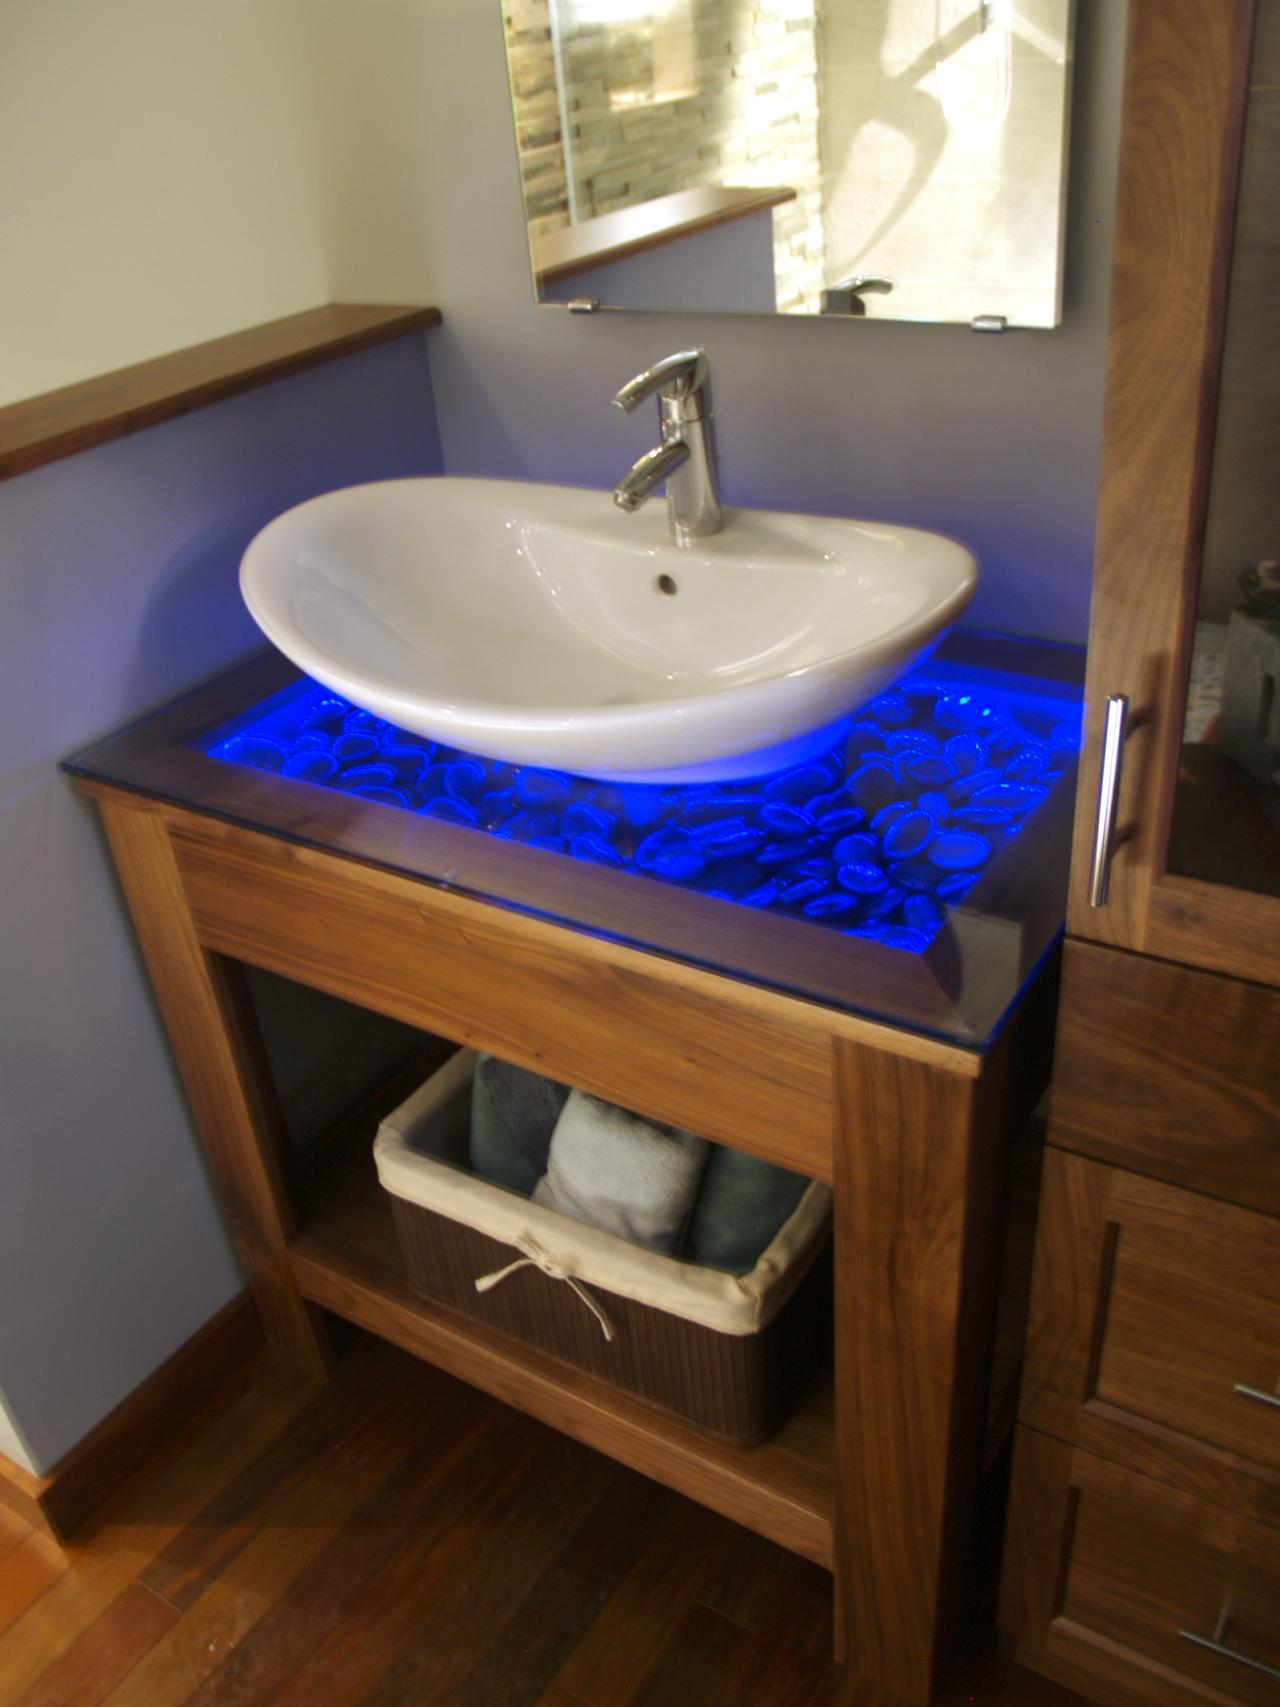 Diy Bathroom Vanity Save Money By Making Your Own - SEEK DIY